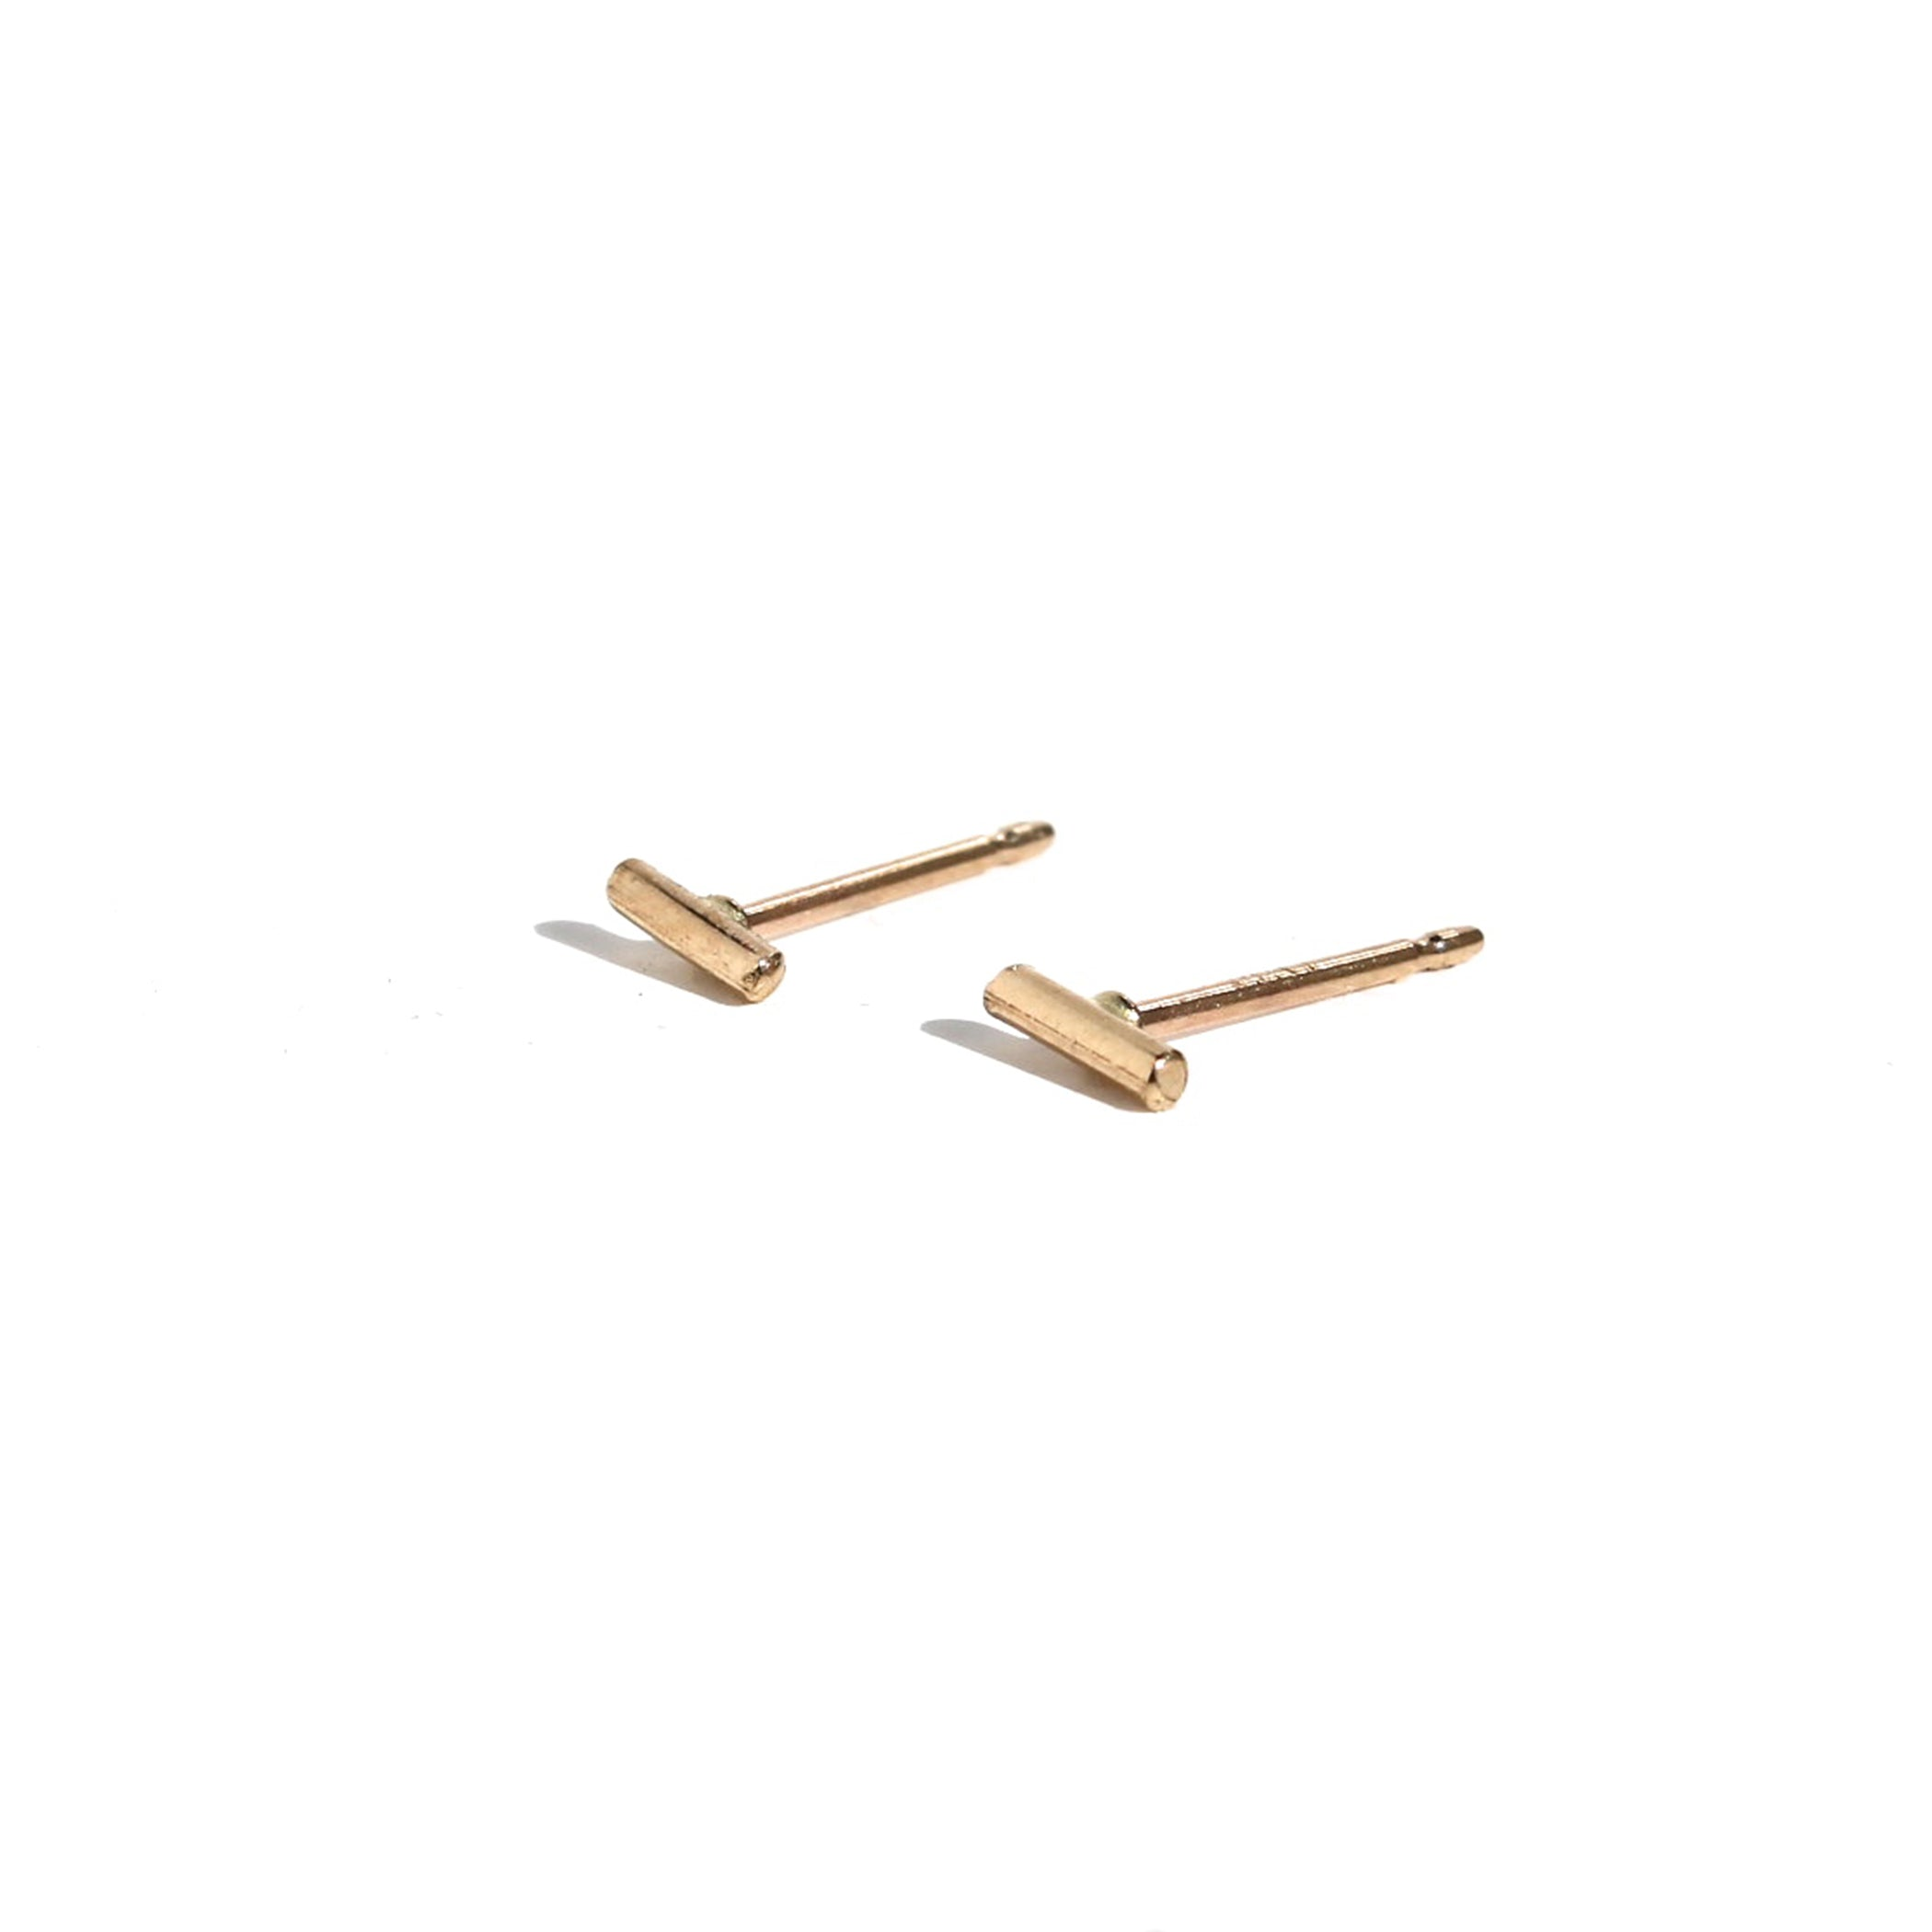 14K 5 MM GOLD STAPLE